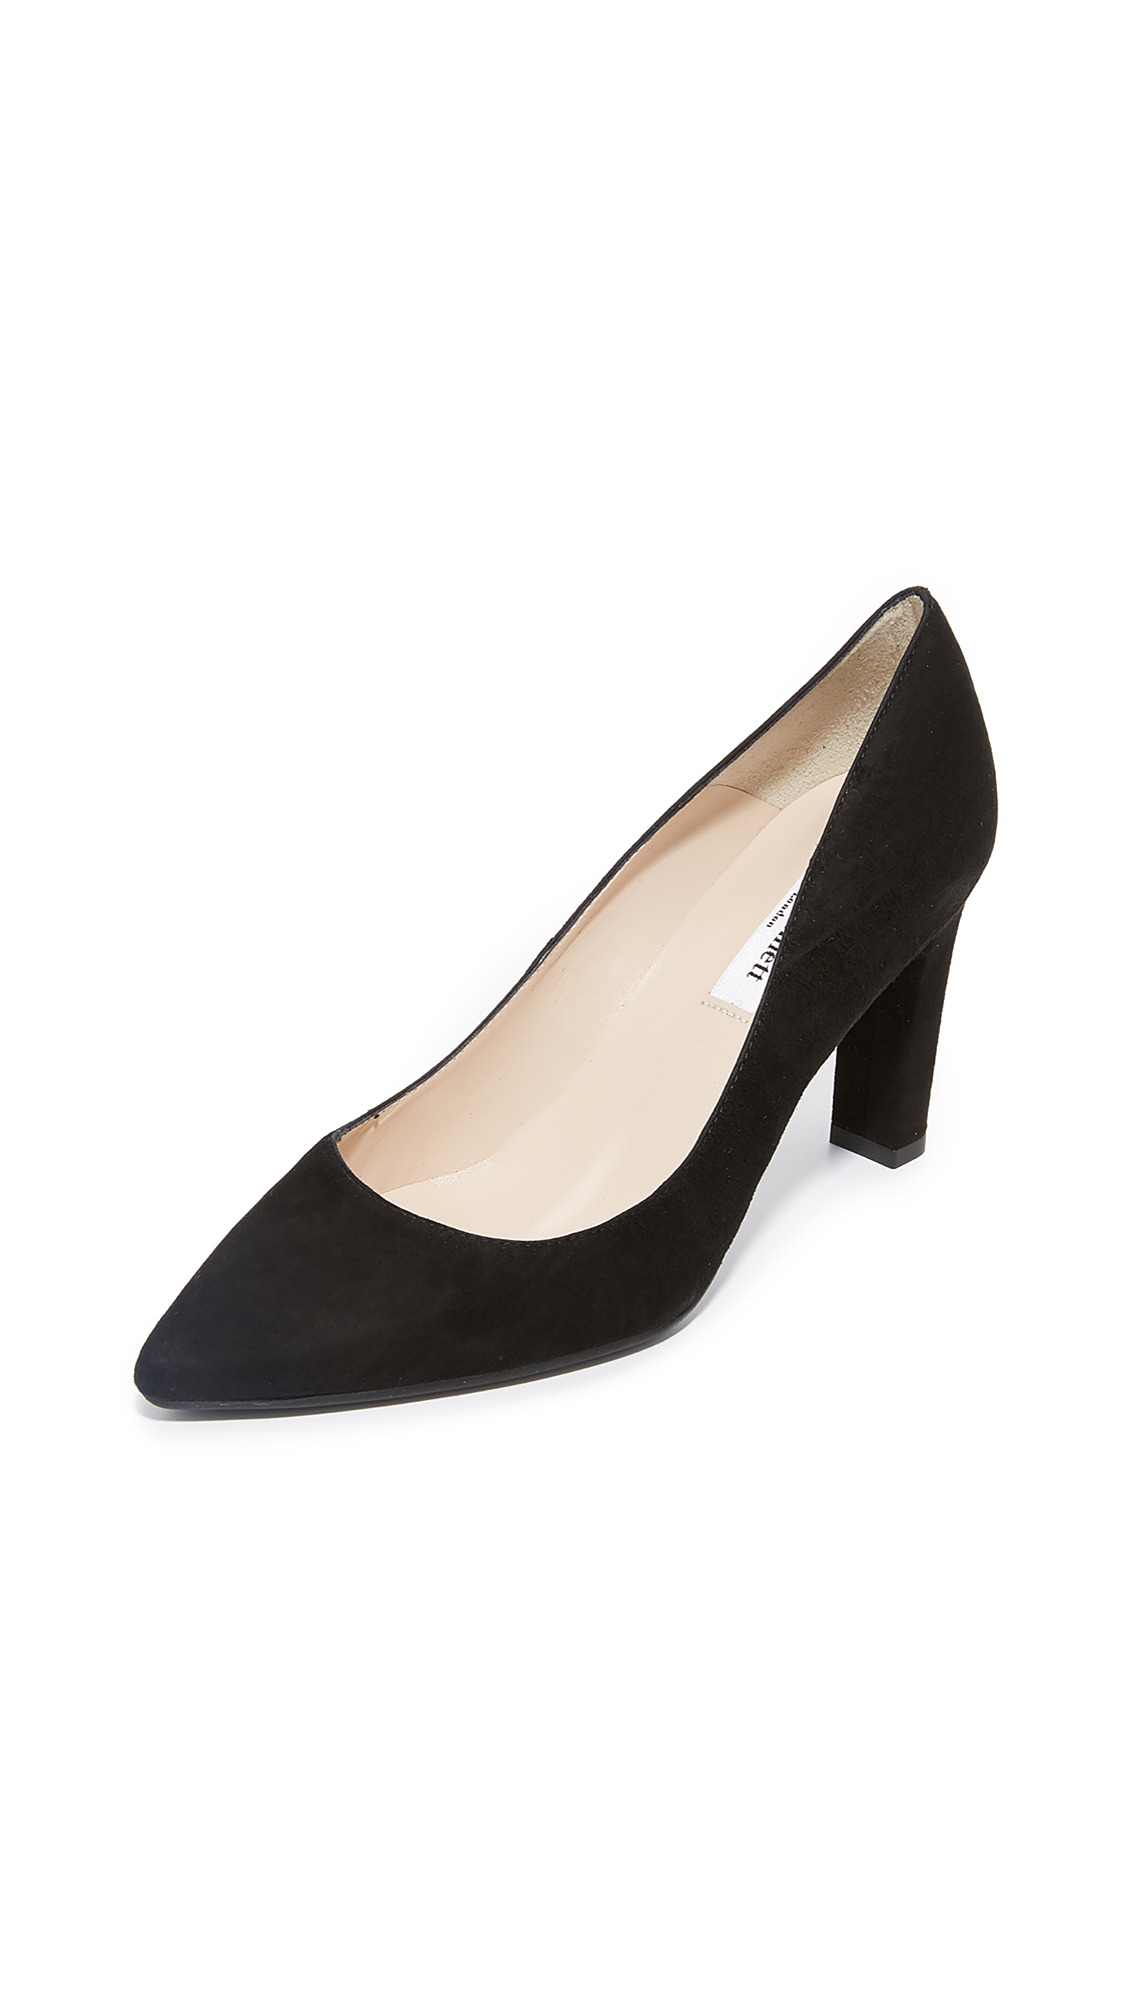 L.K. Bennett Tess Pumps - Black